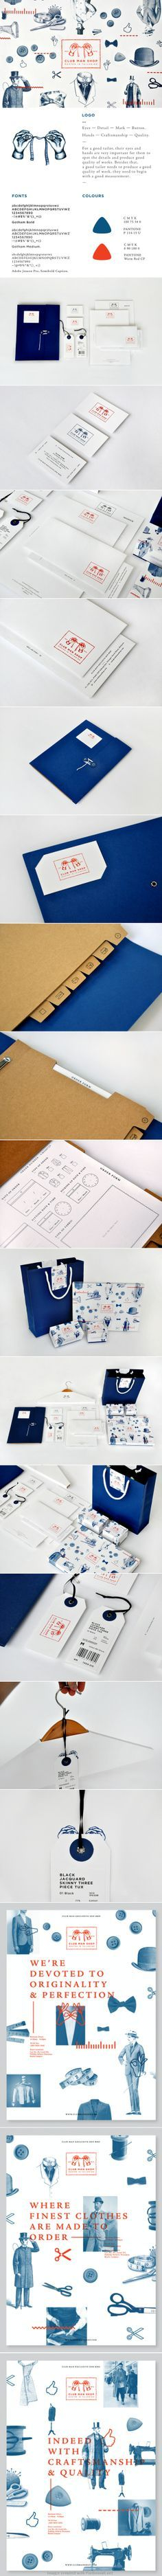 Club Man Shop on Behance. Red, white and blue #packaging #brand #business